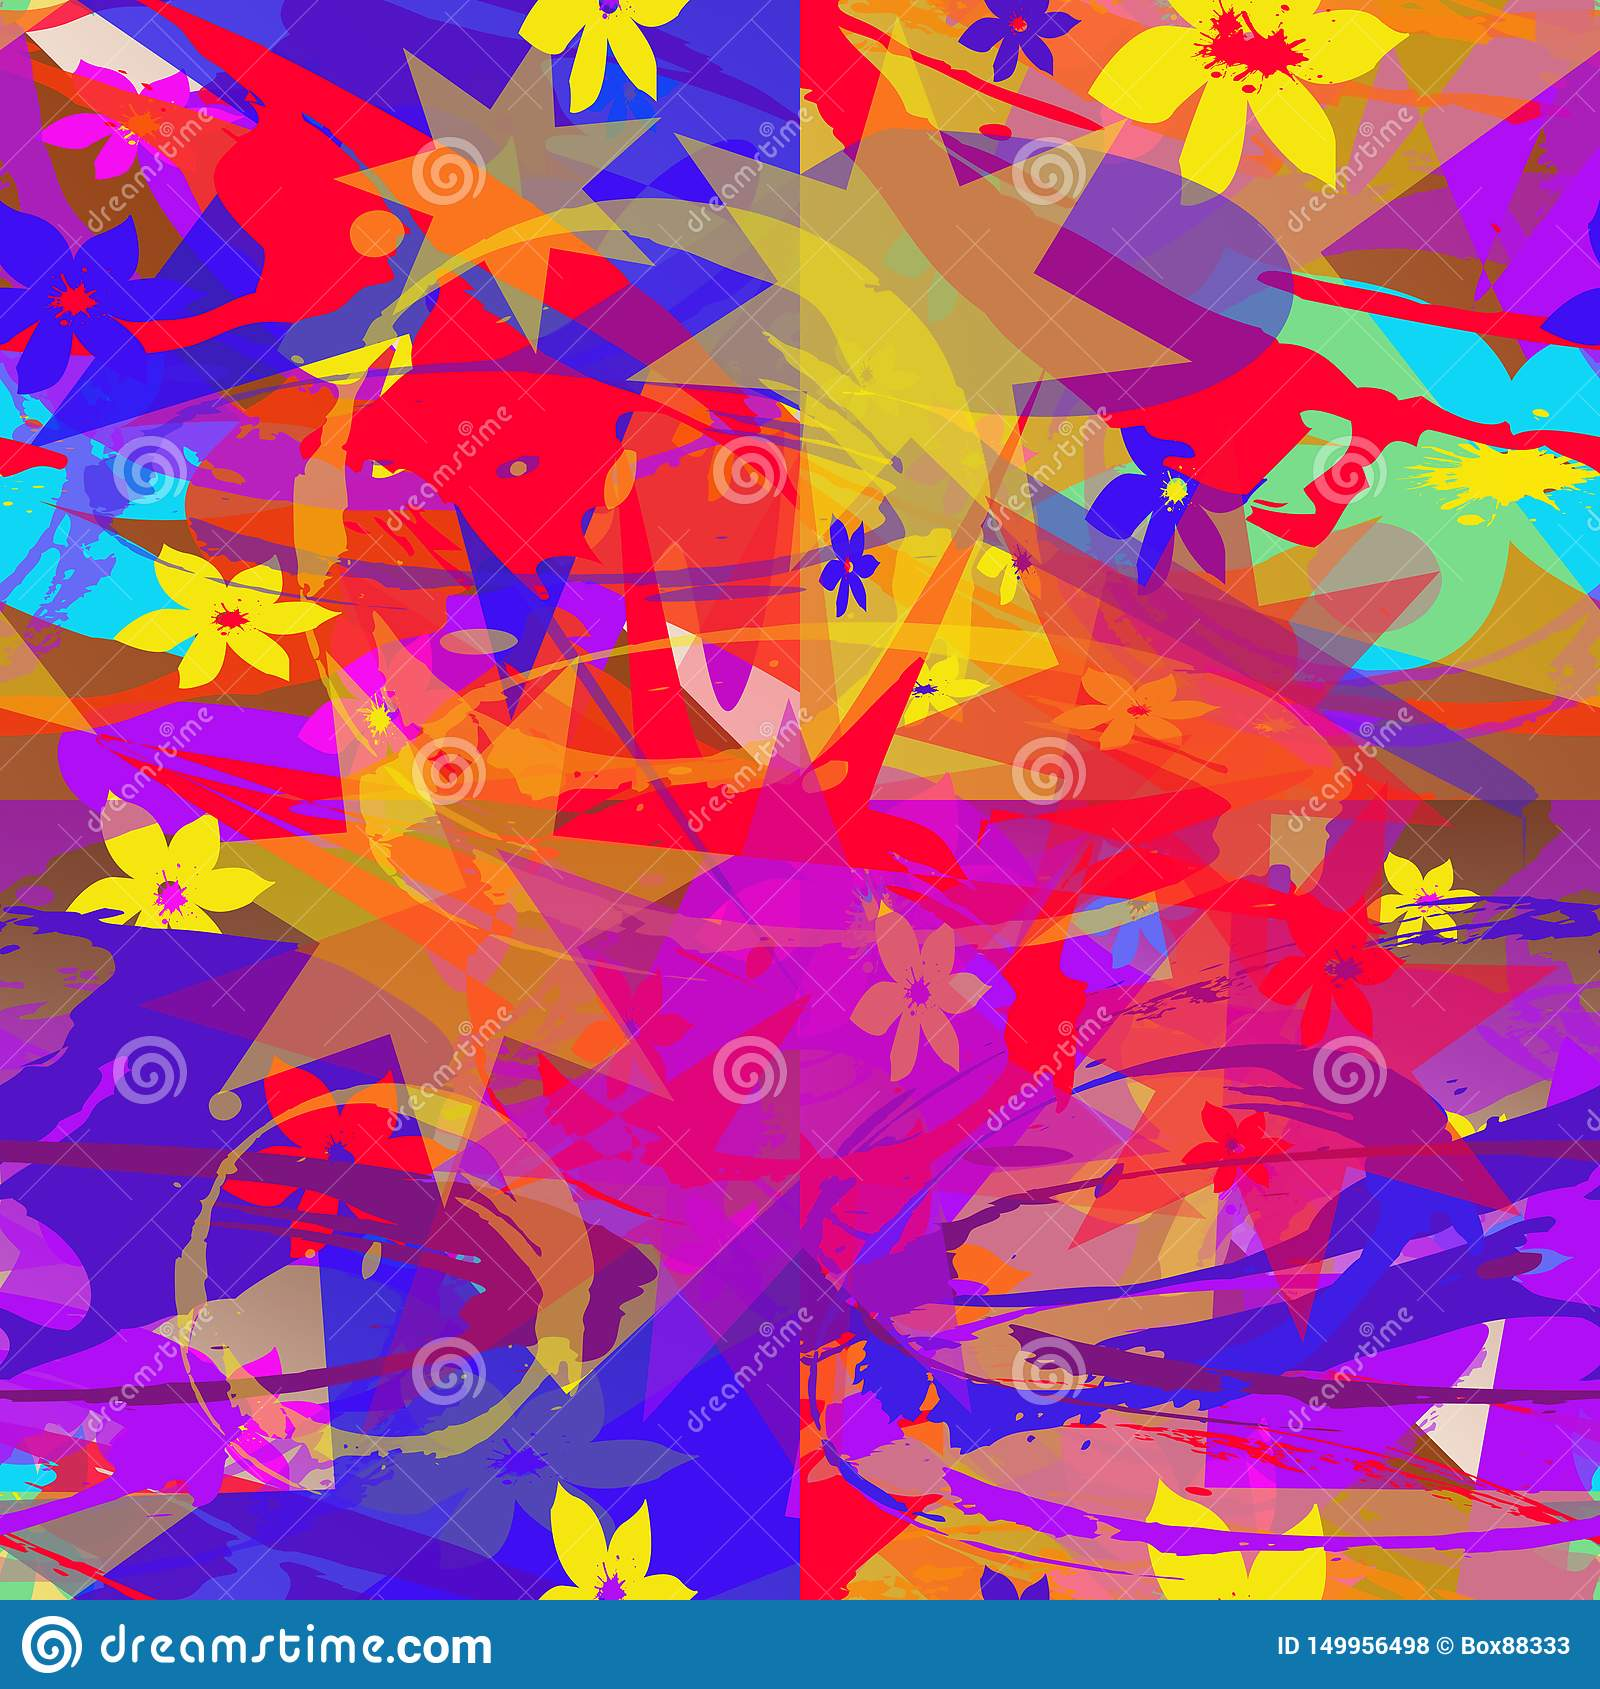 Seamless abstract pattern of multicolored elements.